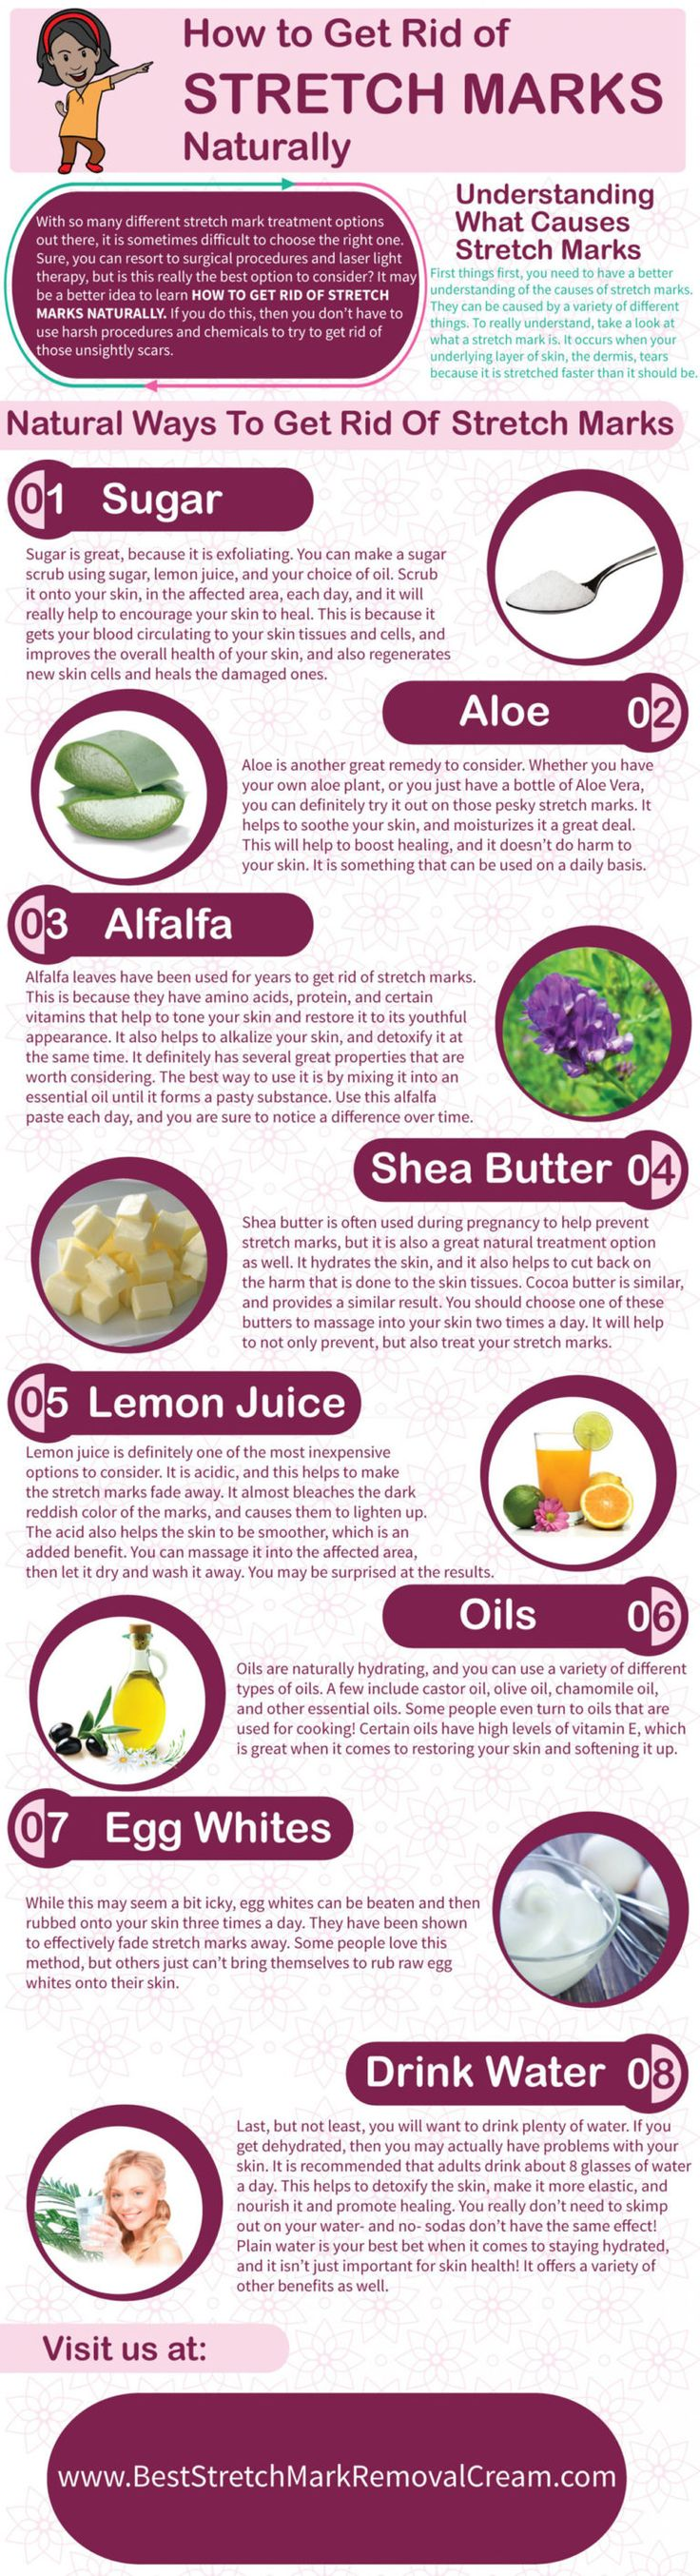 natural-ways-to-remove-stretch-marks